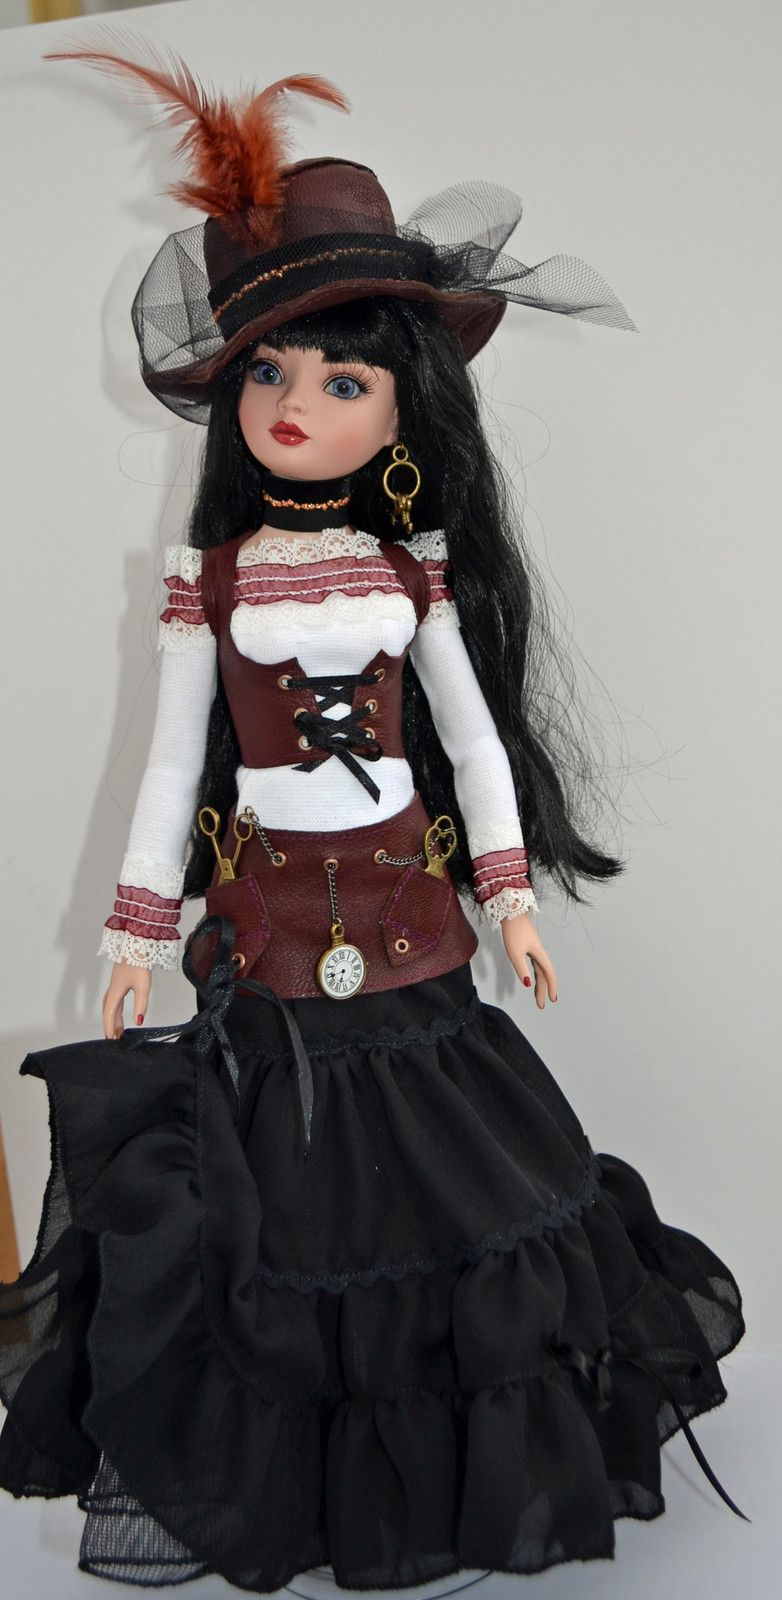 OOAK Handmade Steampunk Outfit for Ellowyne Wilde and friends